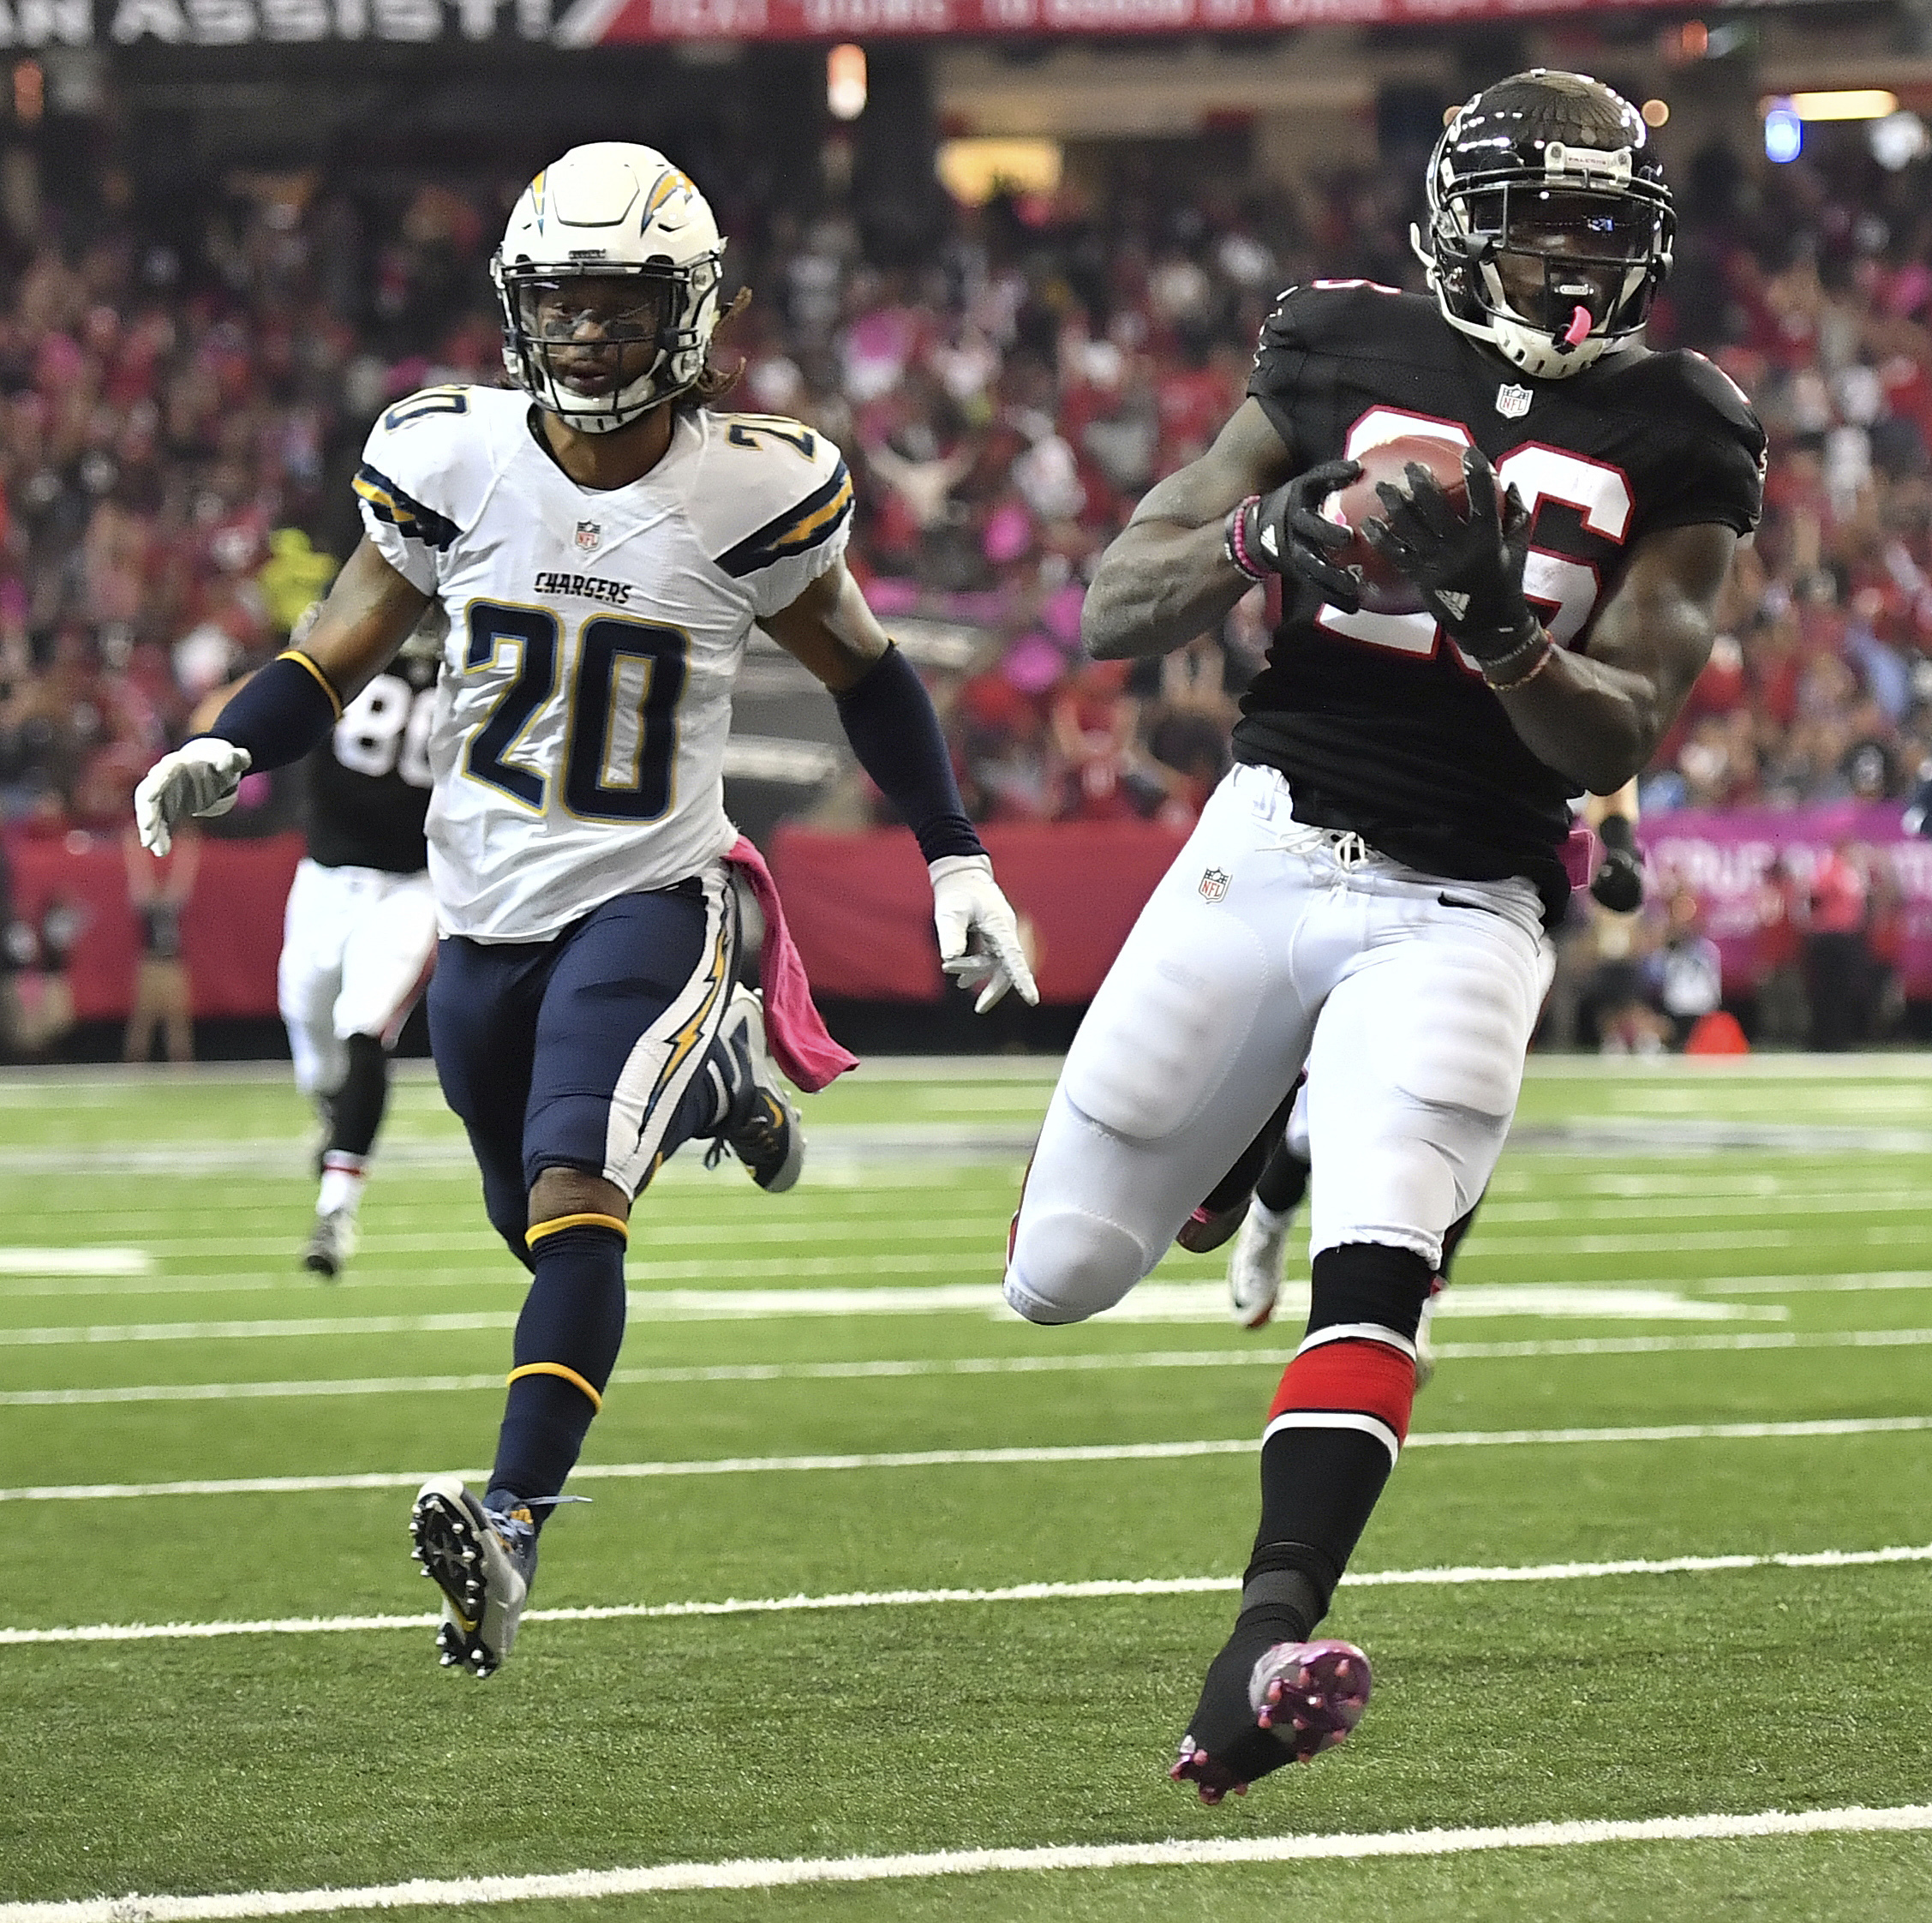 Atlanta Falcons running back Tevin Coleman (26) runs into the end zone for a touchdown against San Diego Chargers free safety Dwight Lowery (20) during the first half of an NFL football game between the Atlanta Falcons and the San Diego Chargers, Sunday,